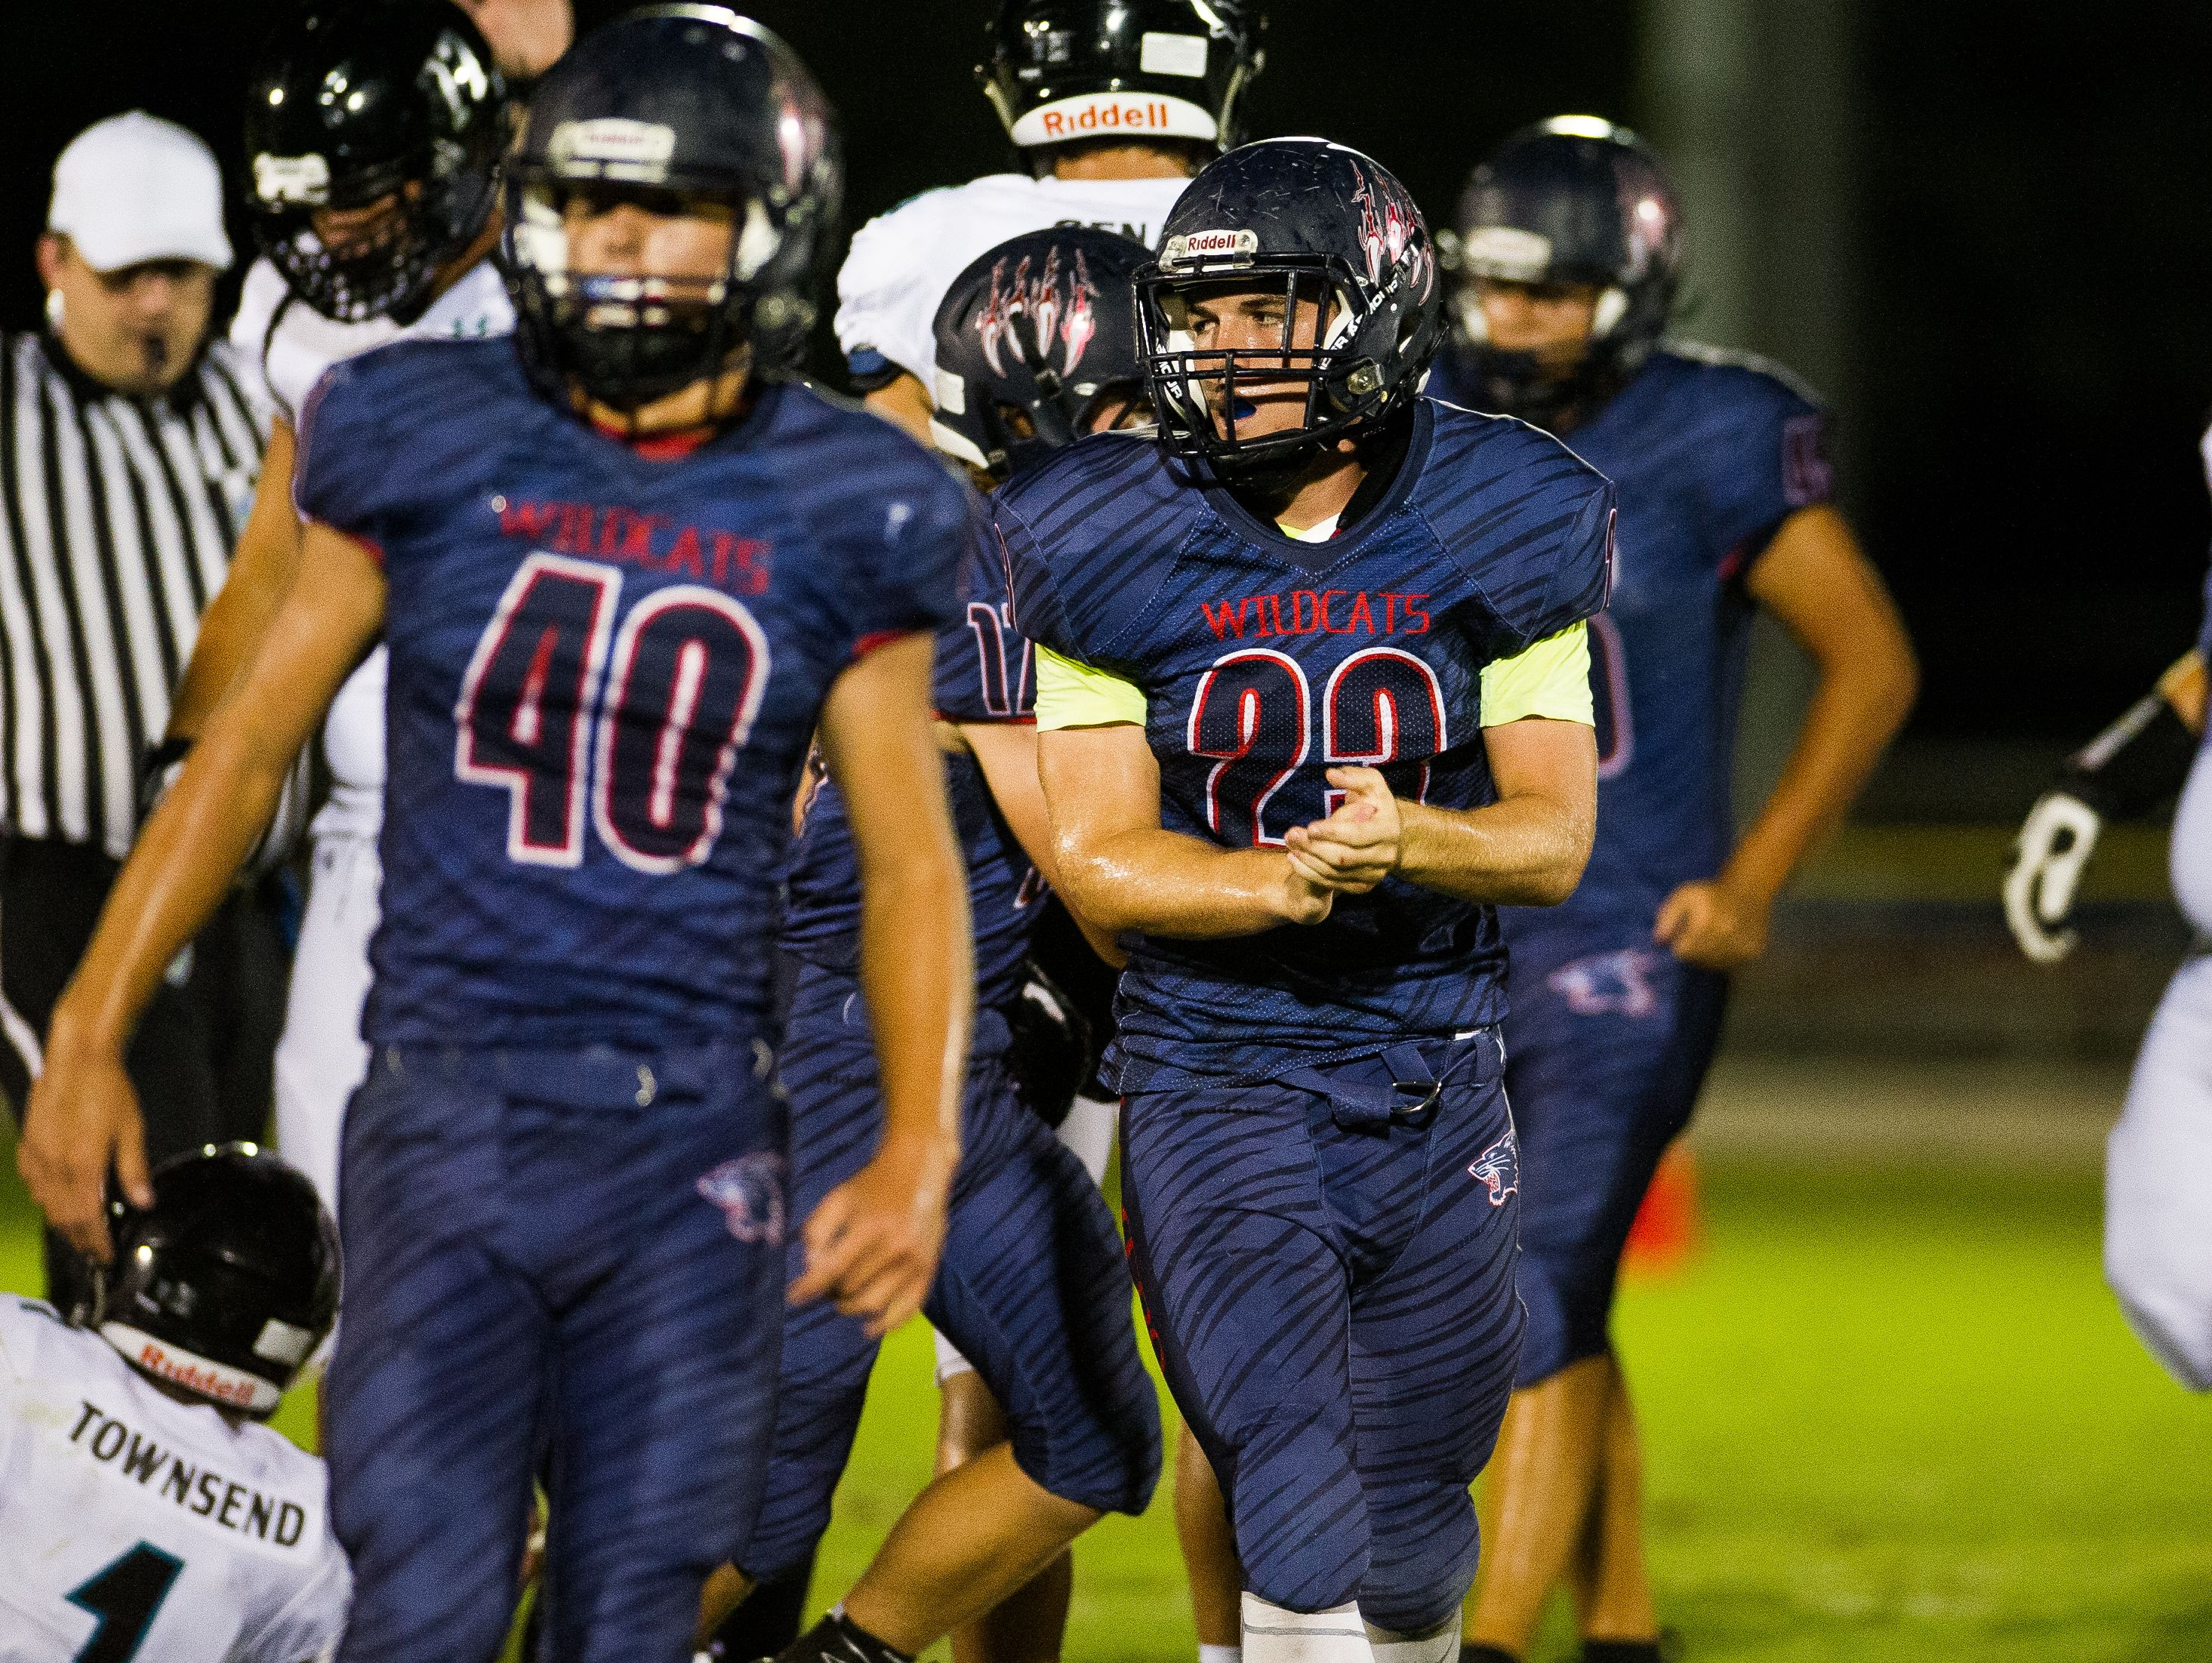 Estero High School's Jonathan Rauss(23) reacts to a play during a game against Gulf Coast High School in Estero, Fla., on Friday, Sept. 23, 2016.